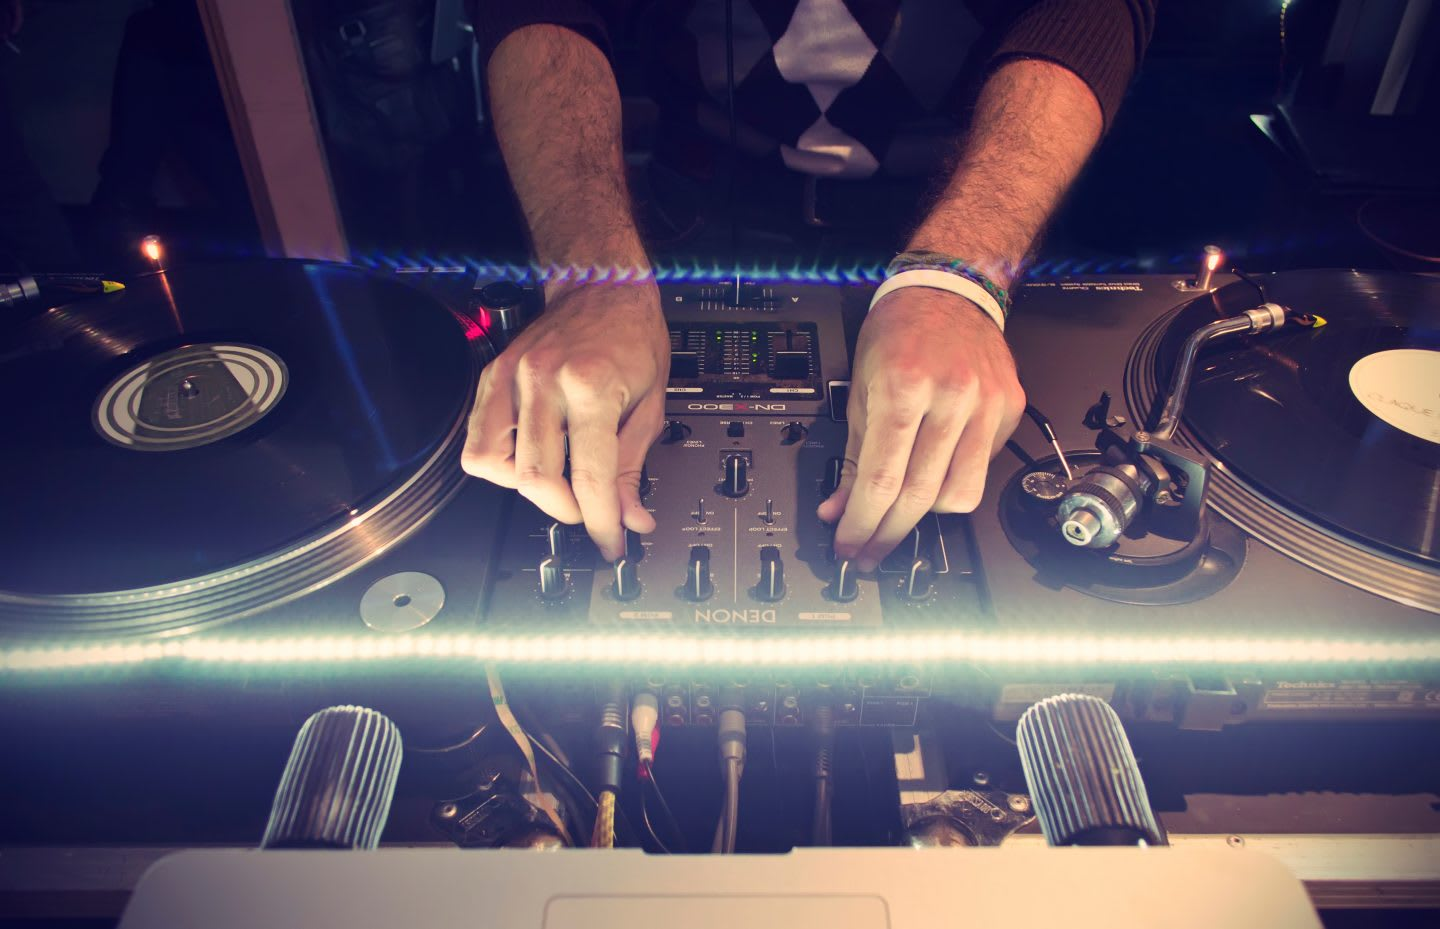 A person producing electronic music at a turntable. mixing music, mood, flow state, GamePlan A